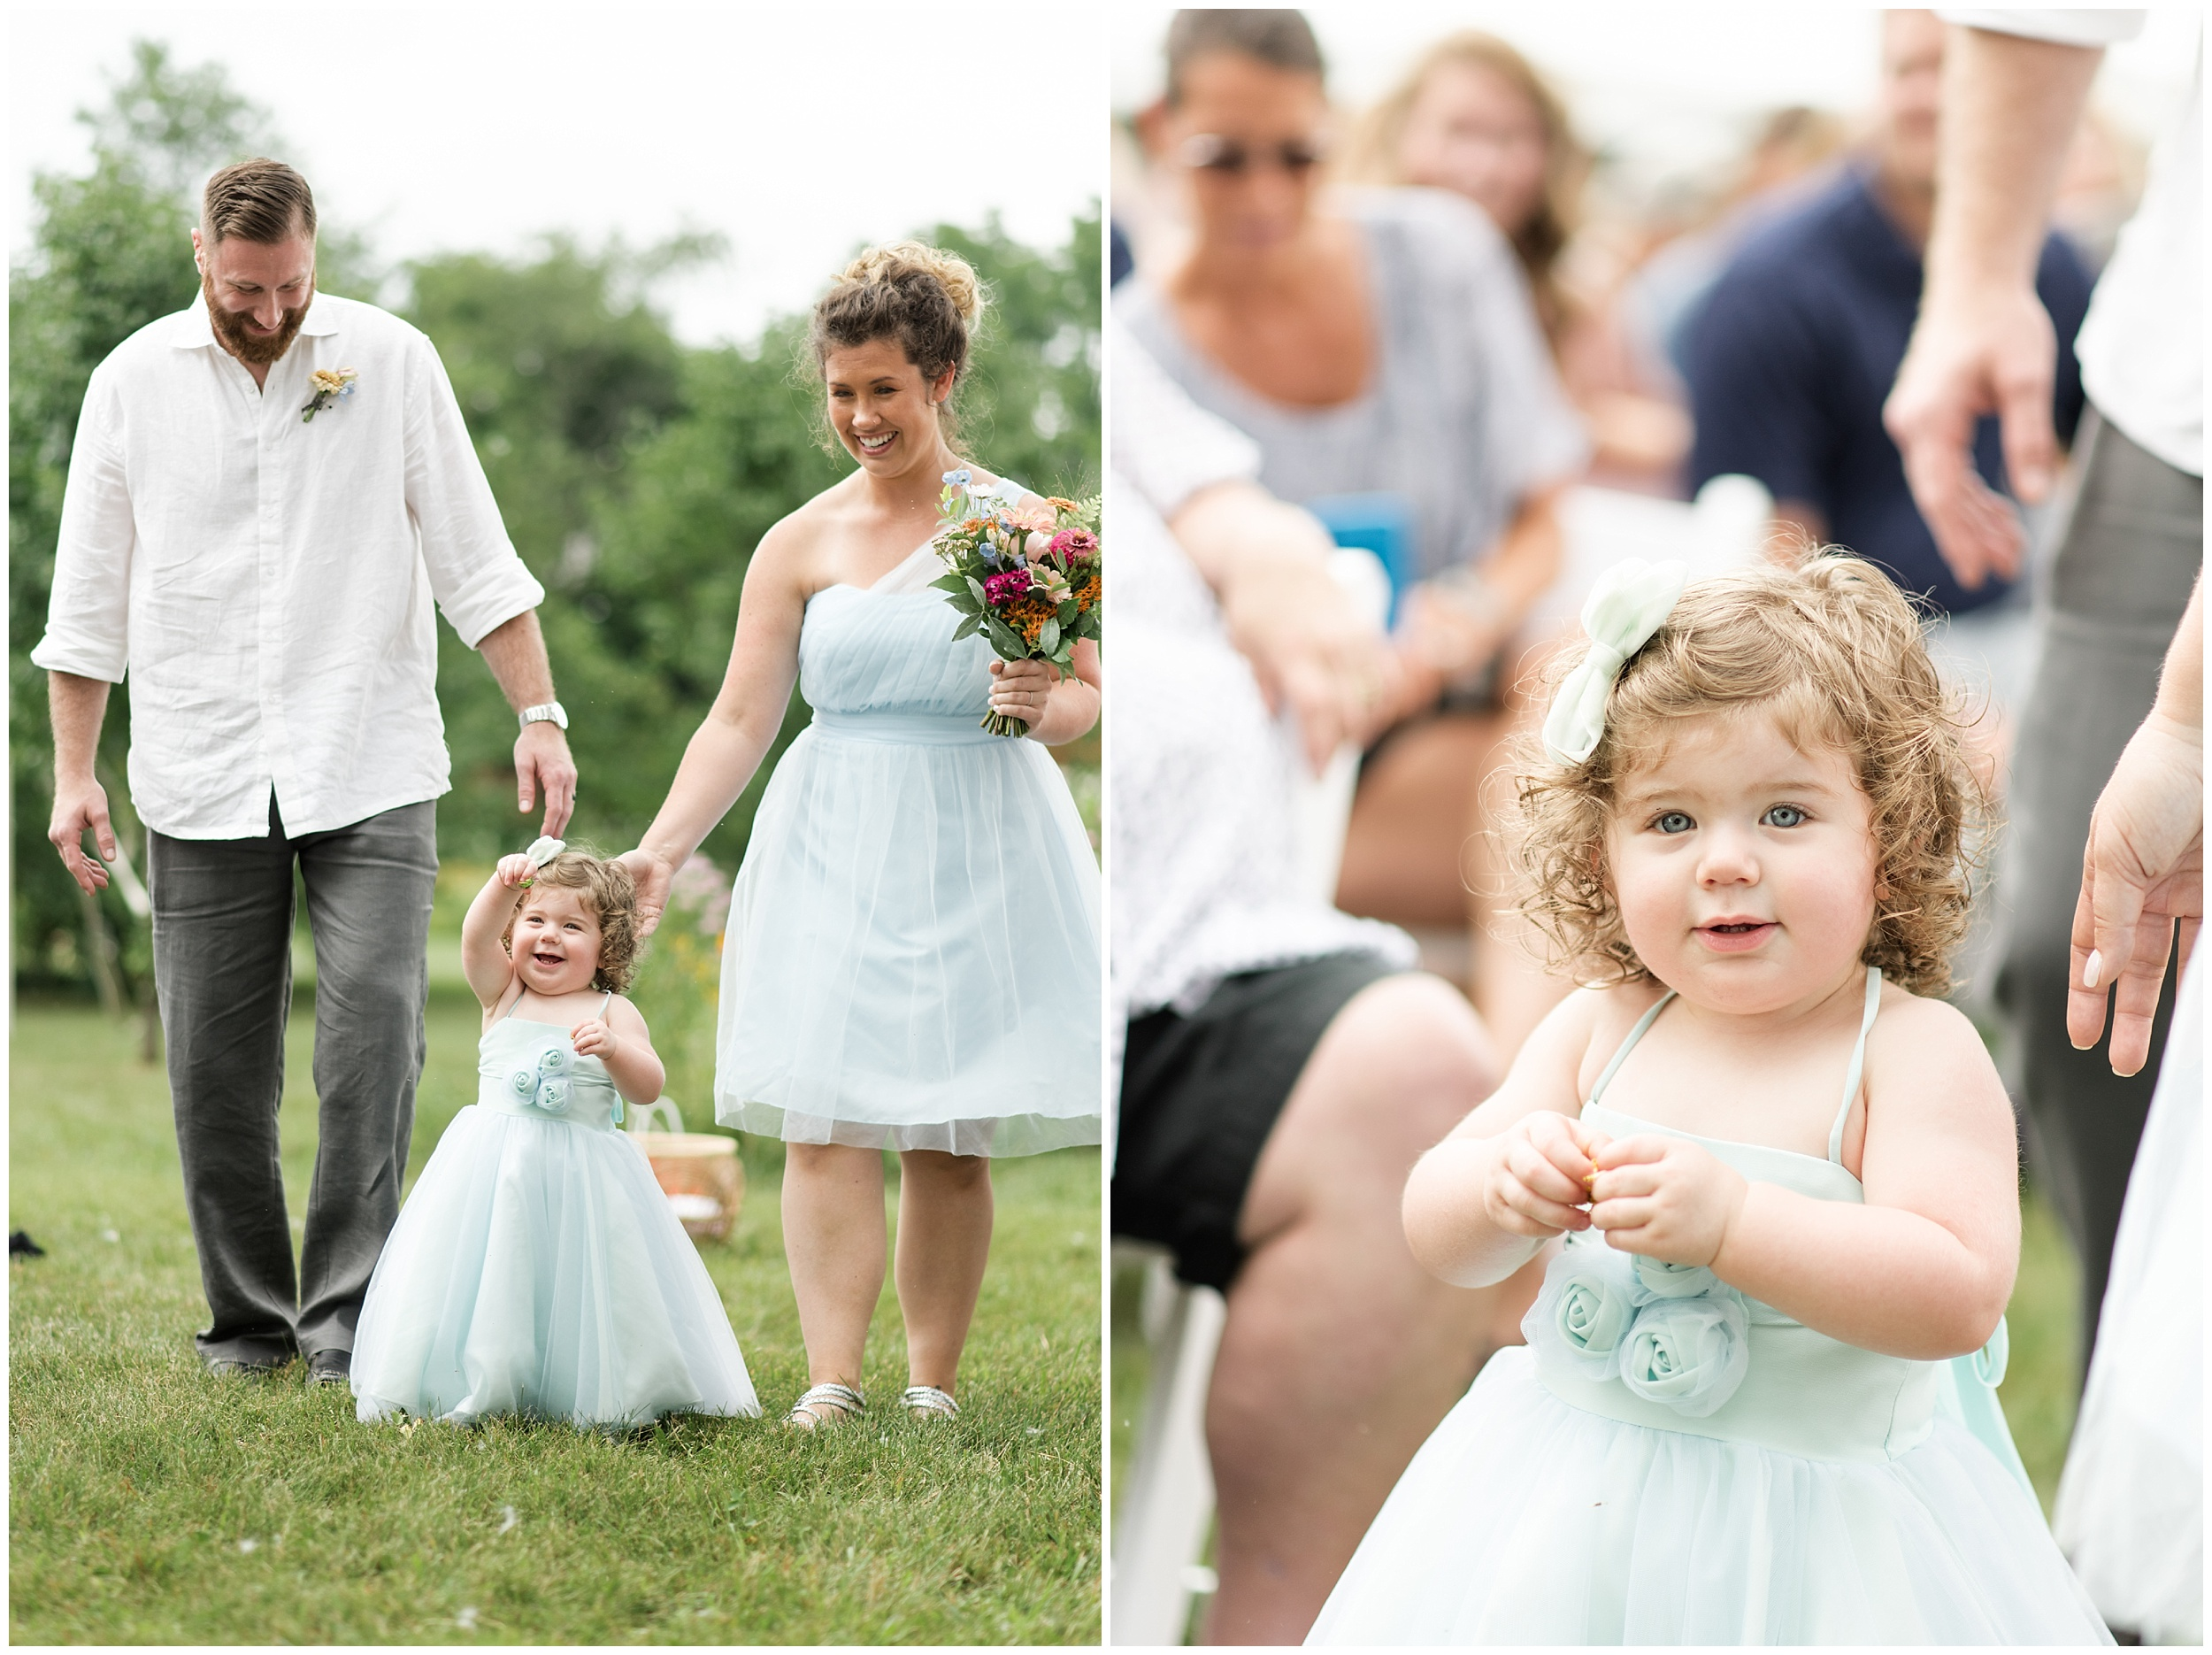 Whimsical-Ethereal-July-Kalamazoo-Wedding-Bright-Airy-Documentary-Milwaukee-Photographer_0028.jpg